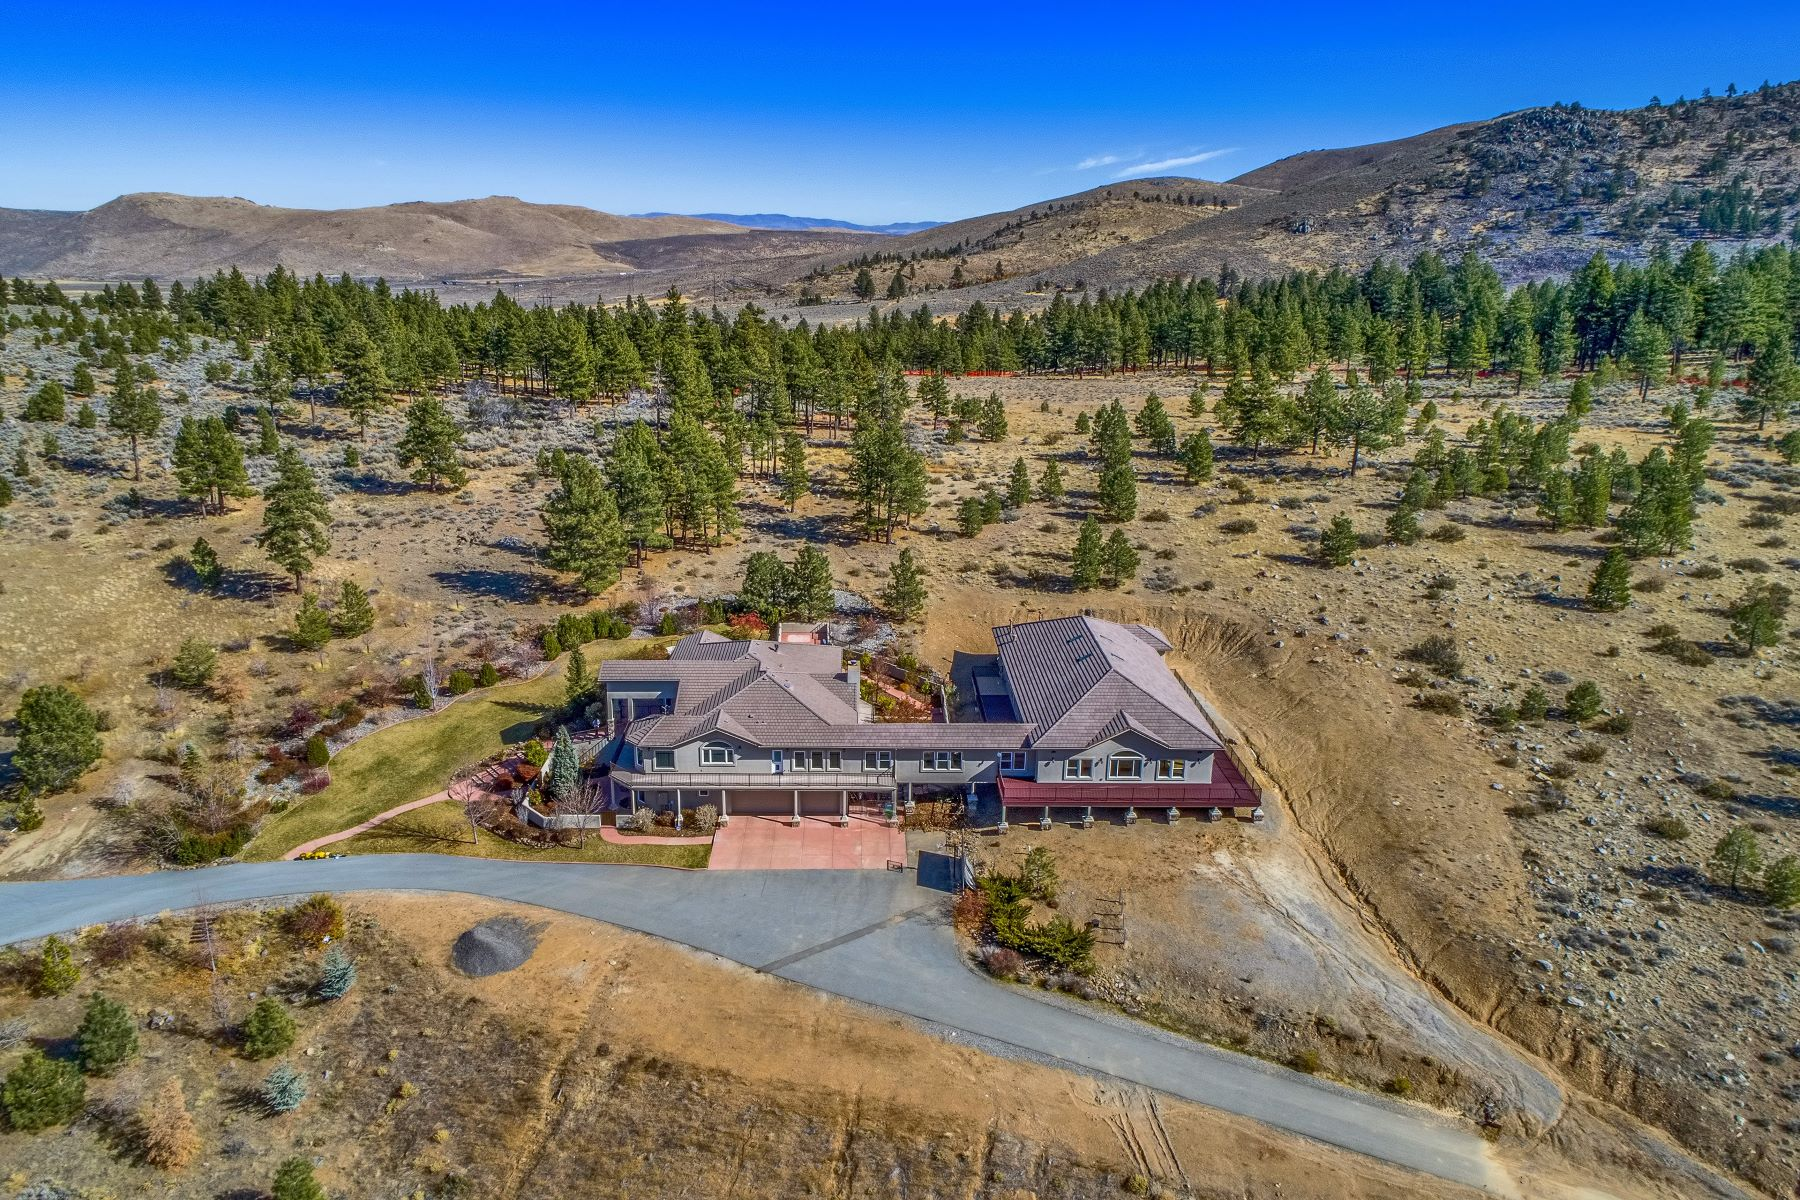 Single Family Homes for Active at 14700 Sto Lat Lane, Reno, NV 89506 14700 Sto Lat Lane Reno, Nevada 89506 United States